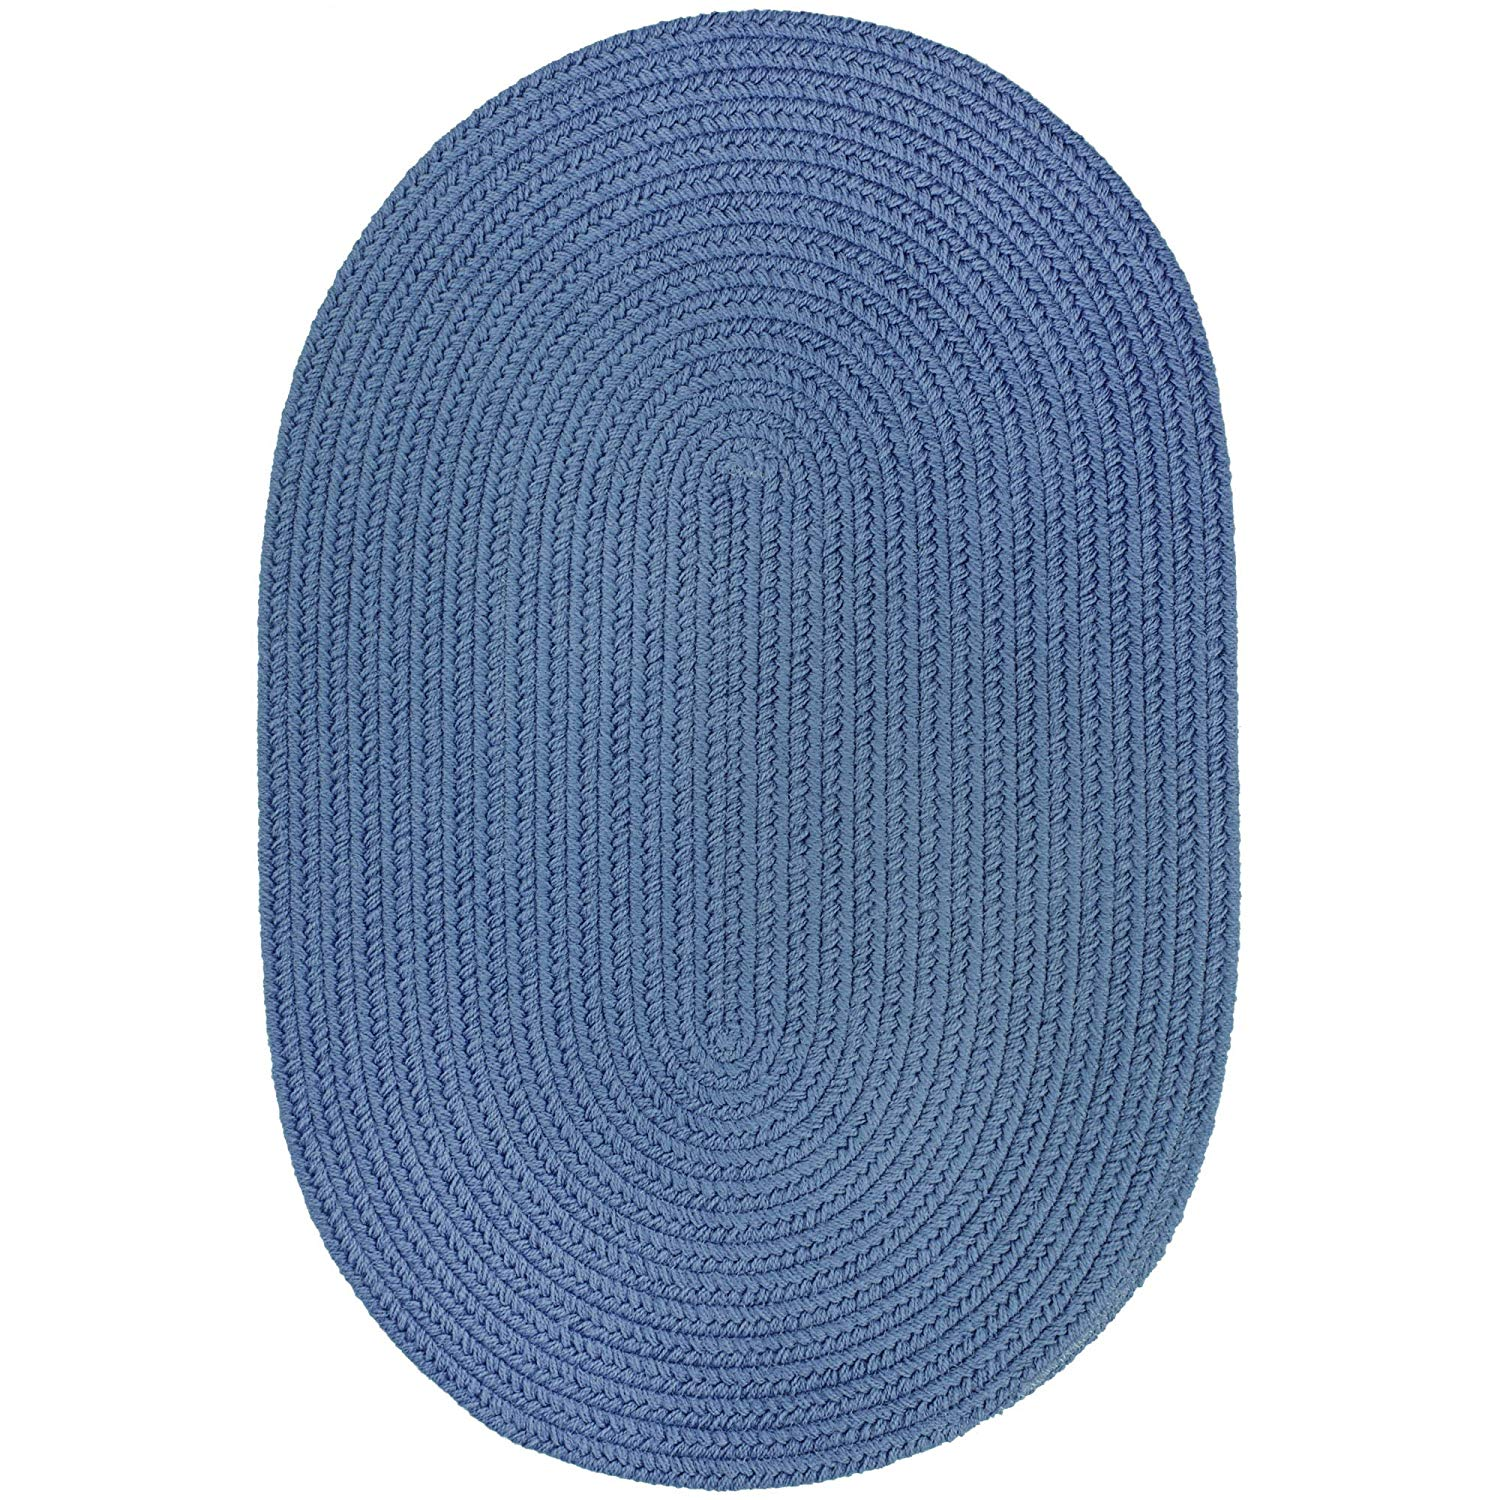 Super Area Rugs Maui Braided Rug Indoor Outdoor Rug Washable Reversible Blue Patio Porch Kitchen Carpet, 10' X 13' Oval